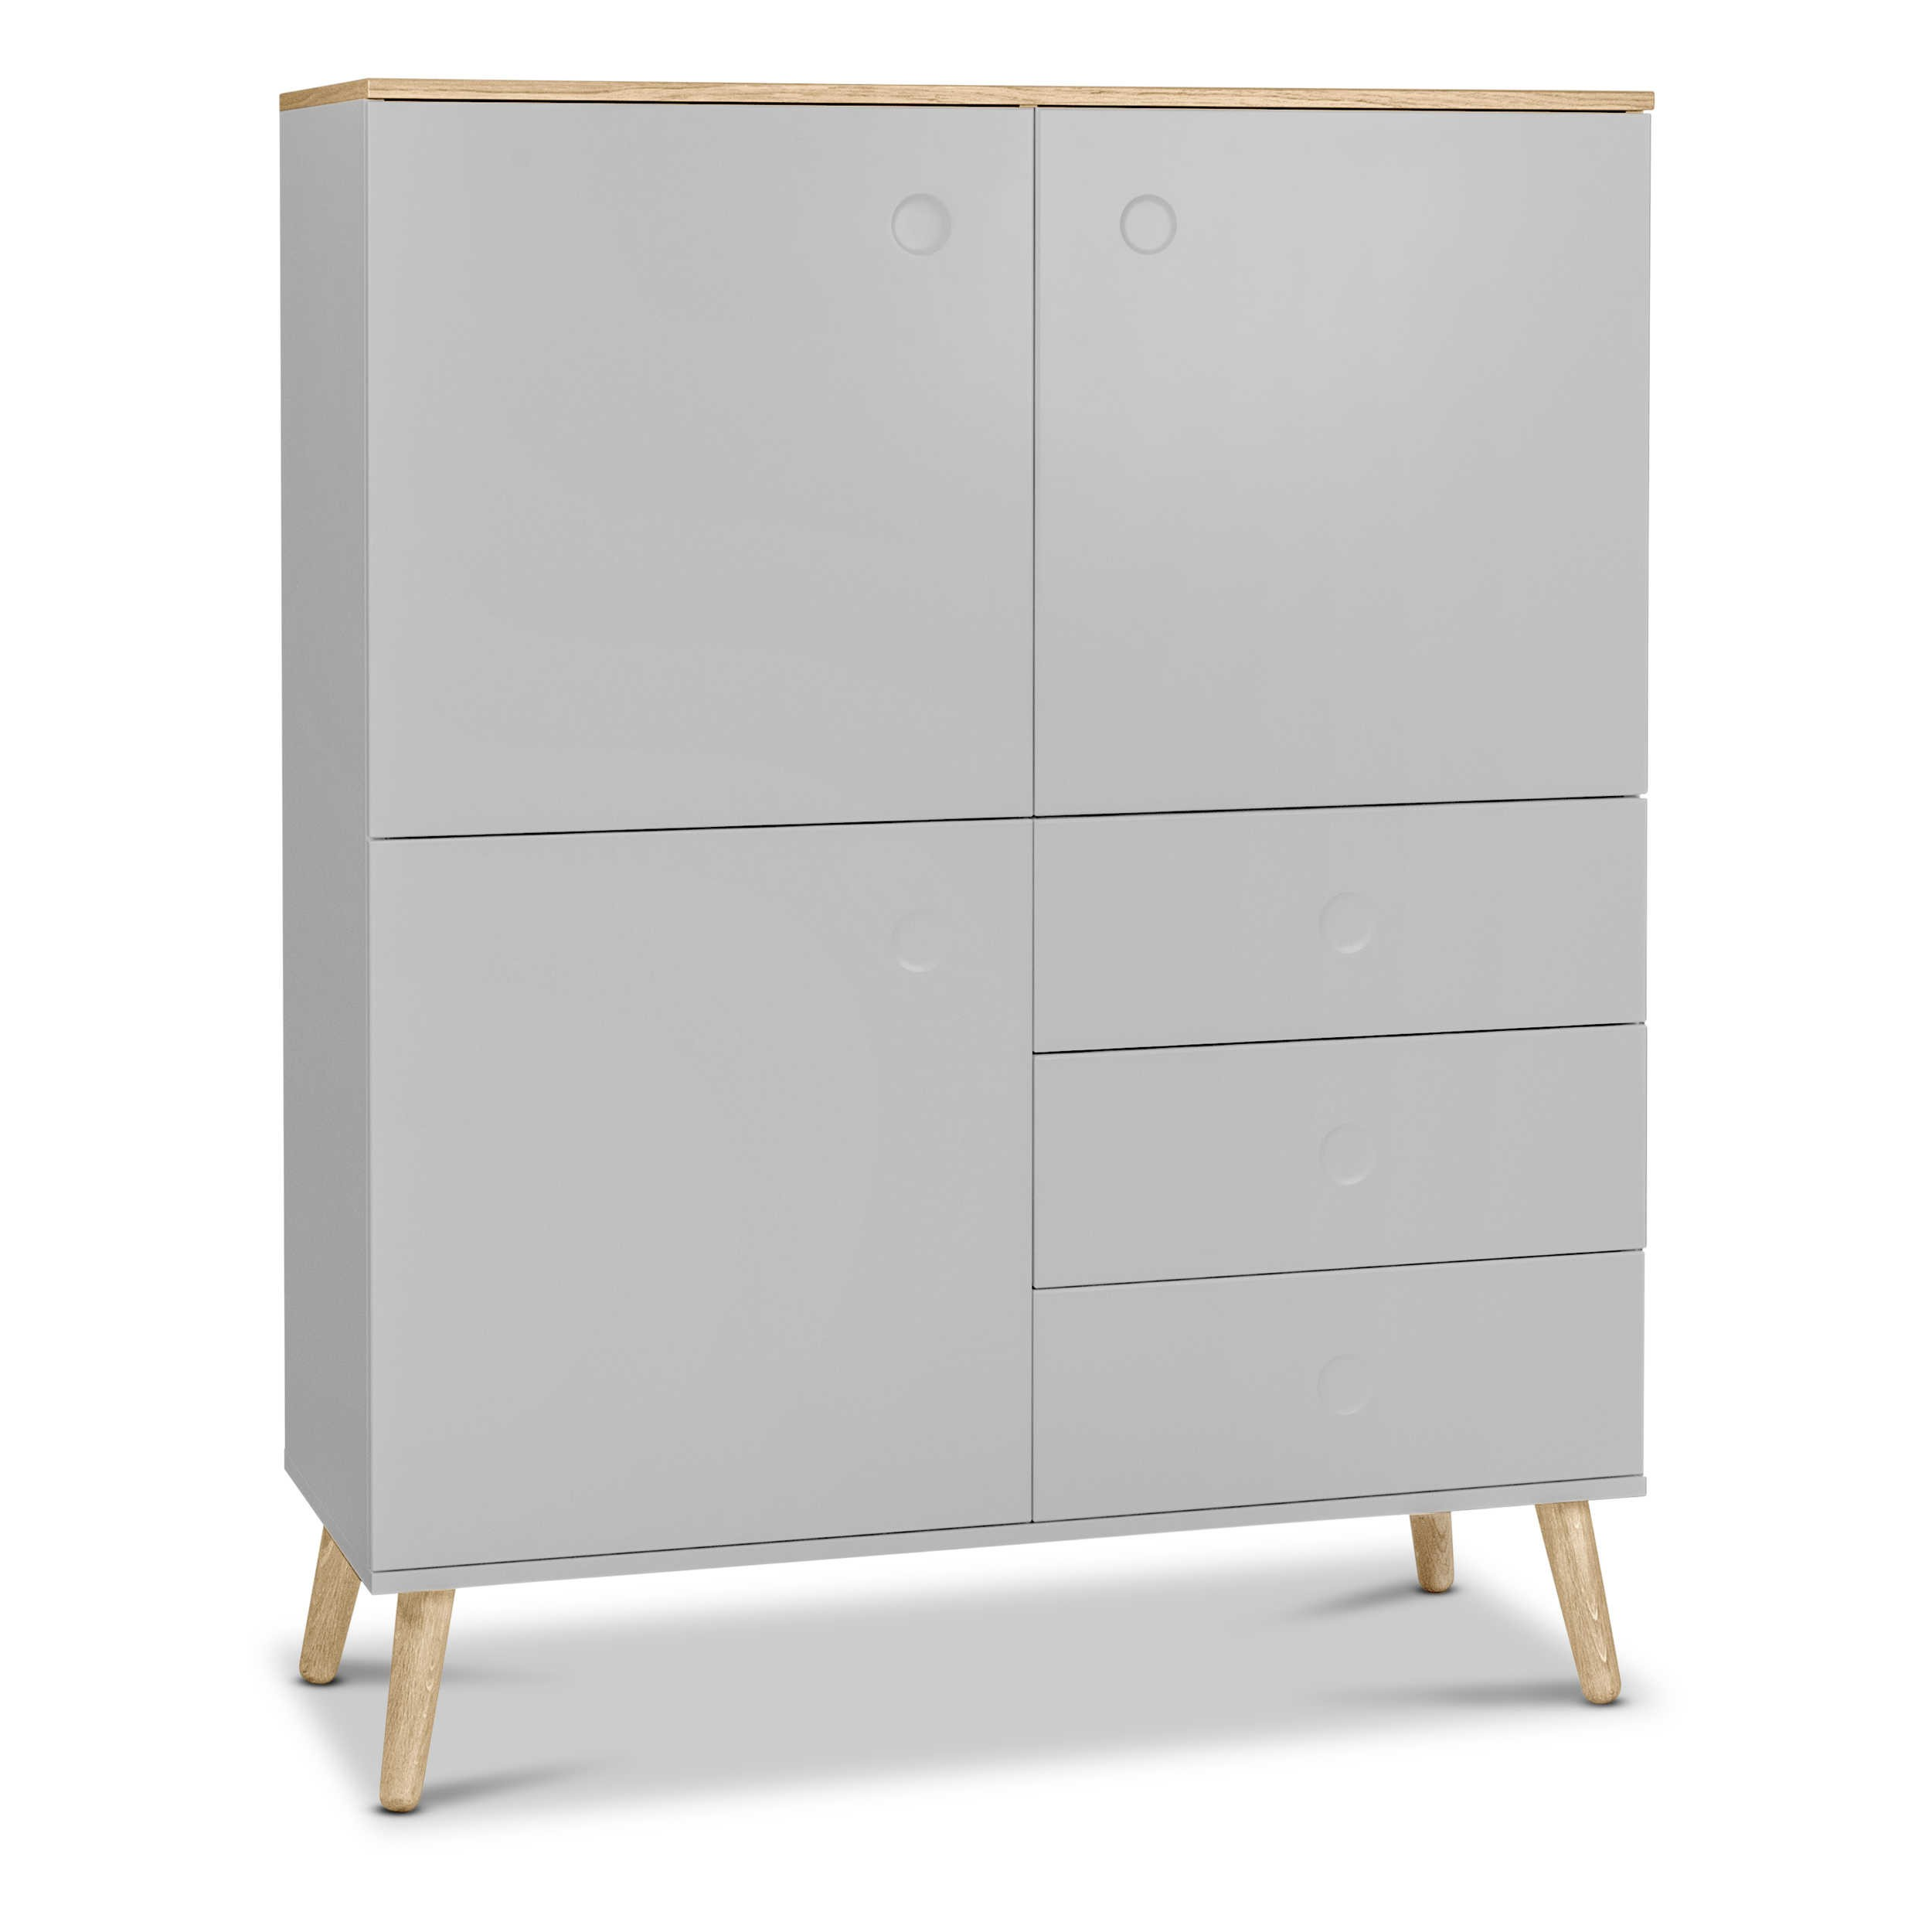 tenzo highboard dot grau lack hochglanz online kaufen. Black Bedroom Furniture Sets. Home Design Ideas